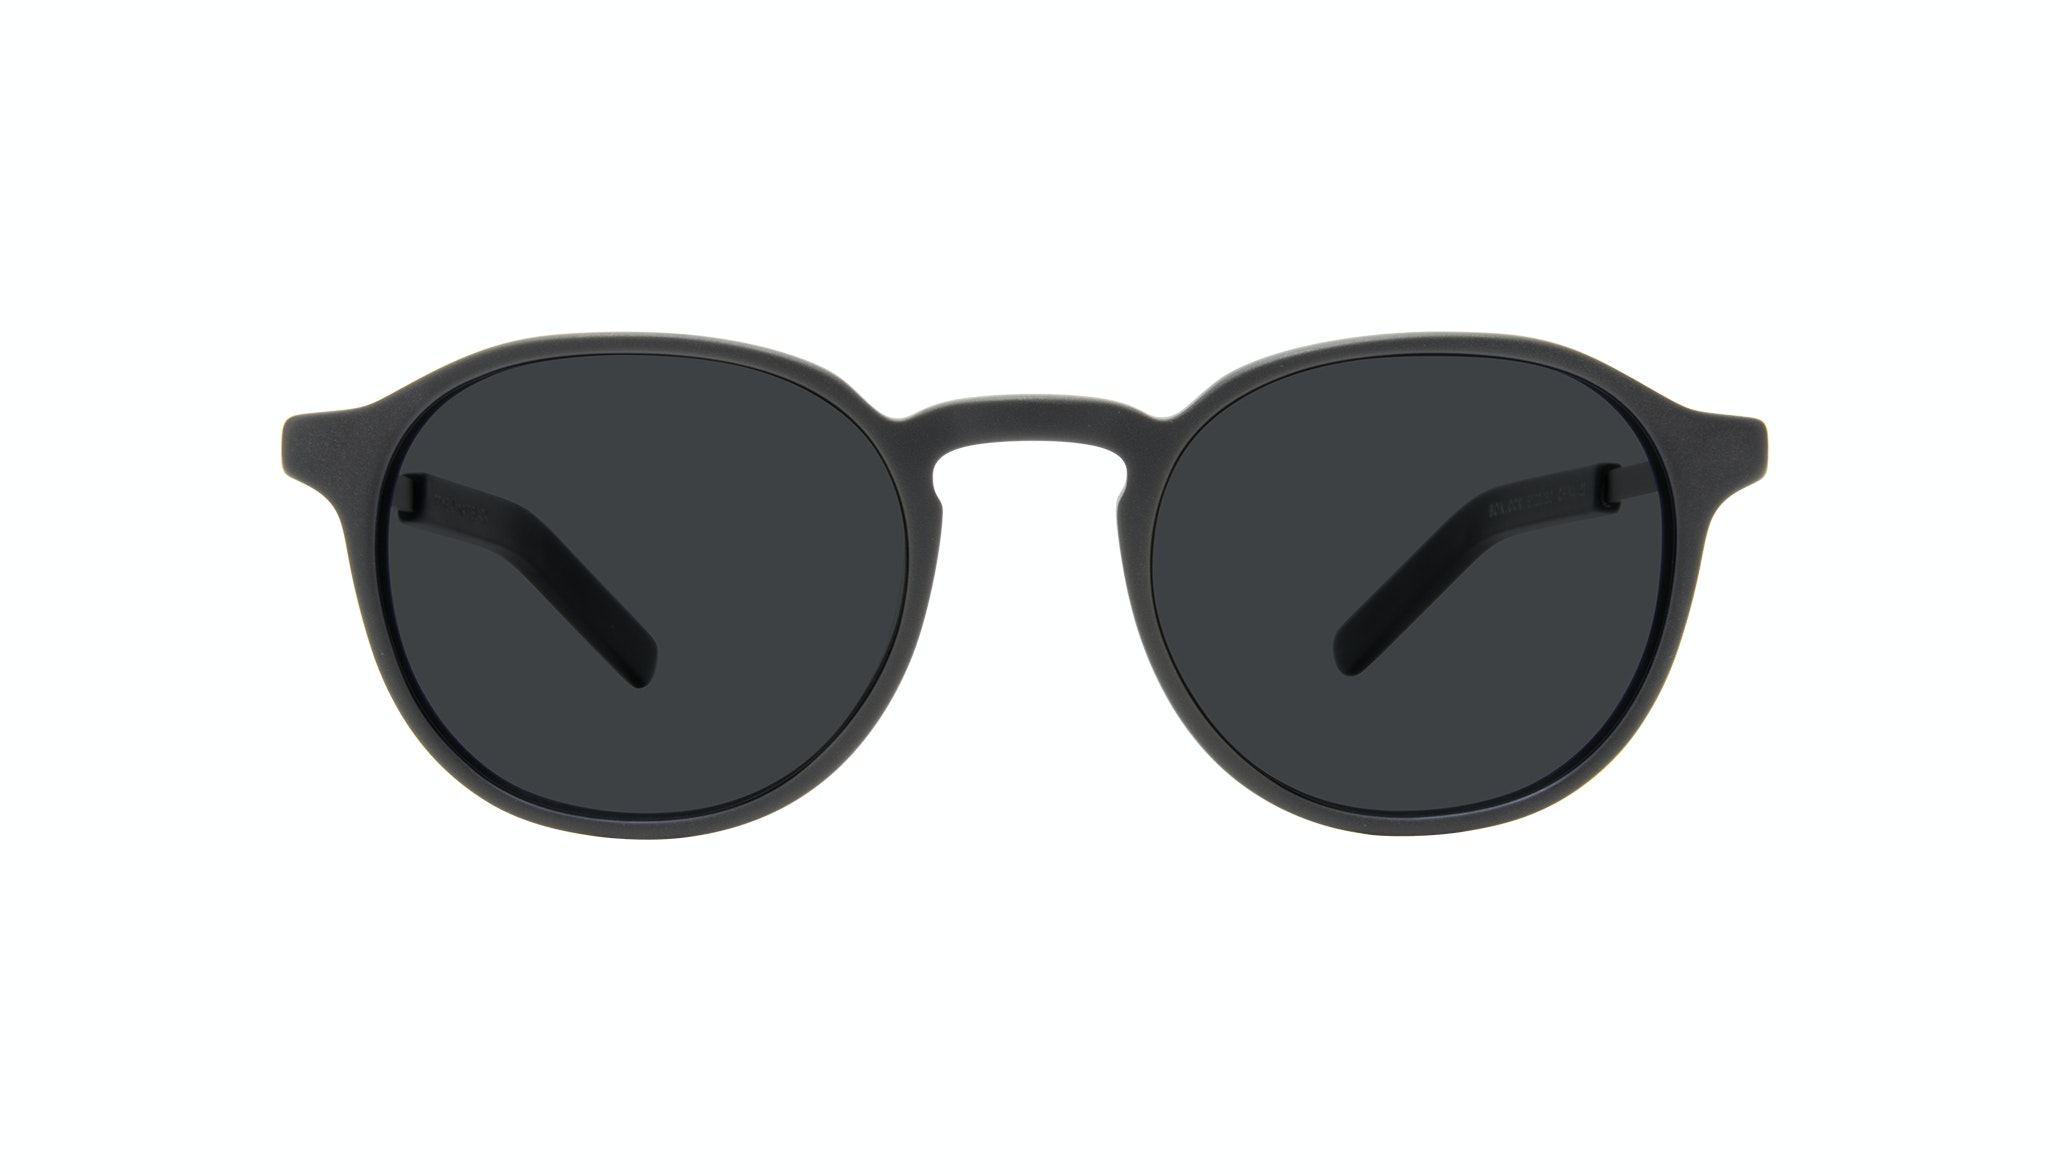 Affordable Fashion Glasses Round Sunglasses Men Prime XL Matte Black